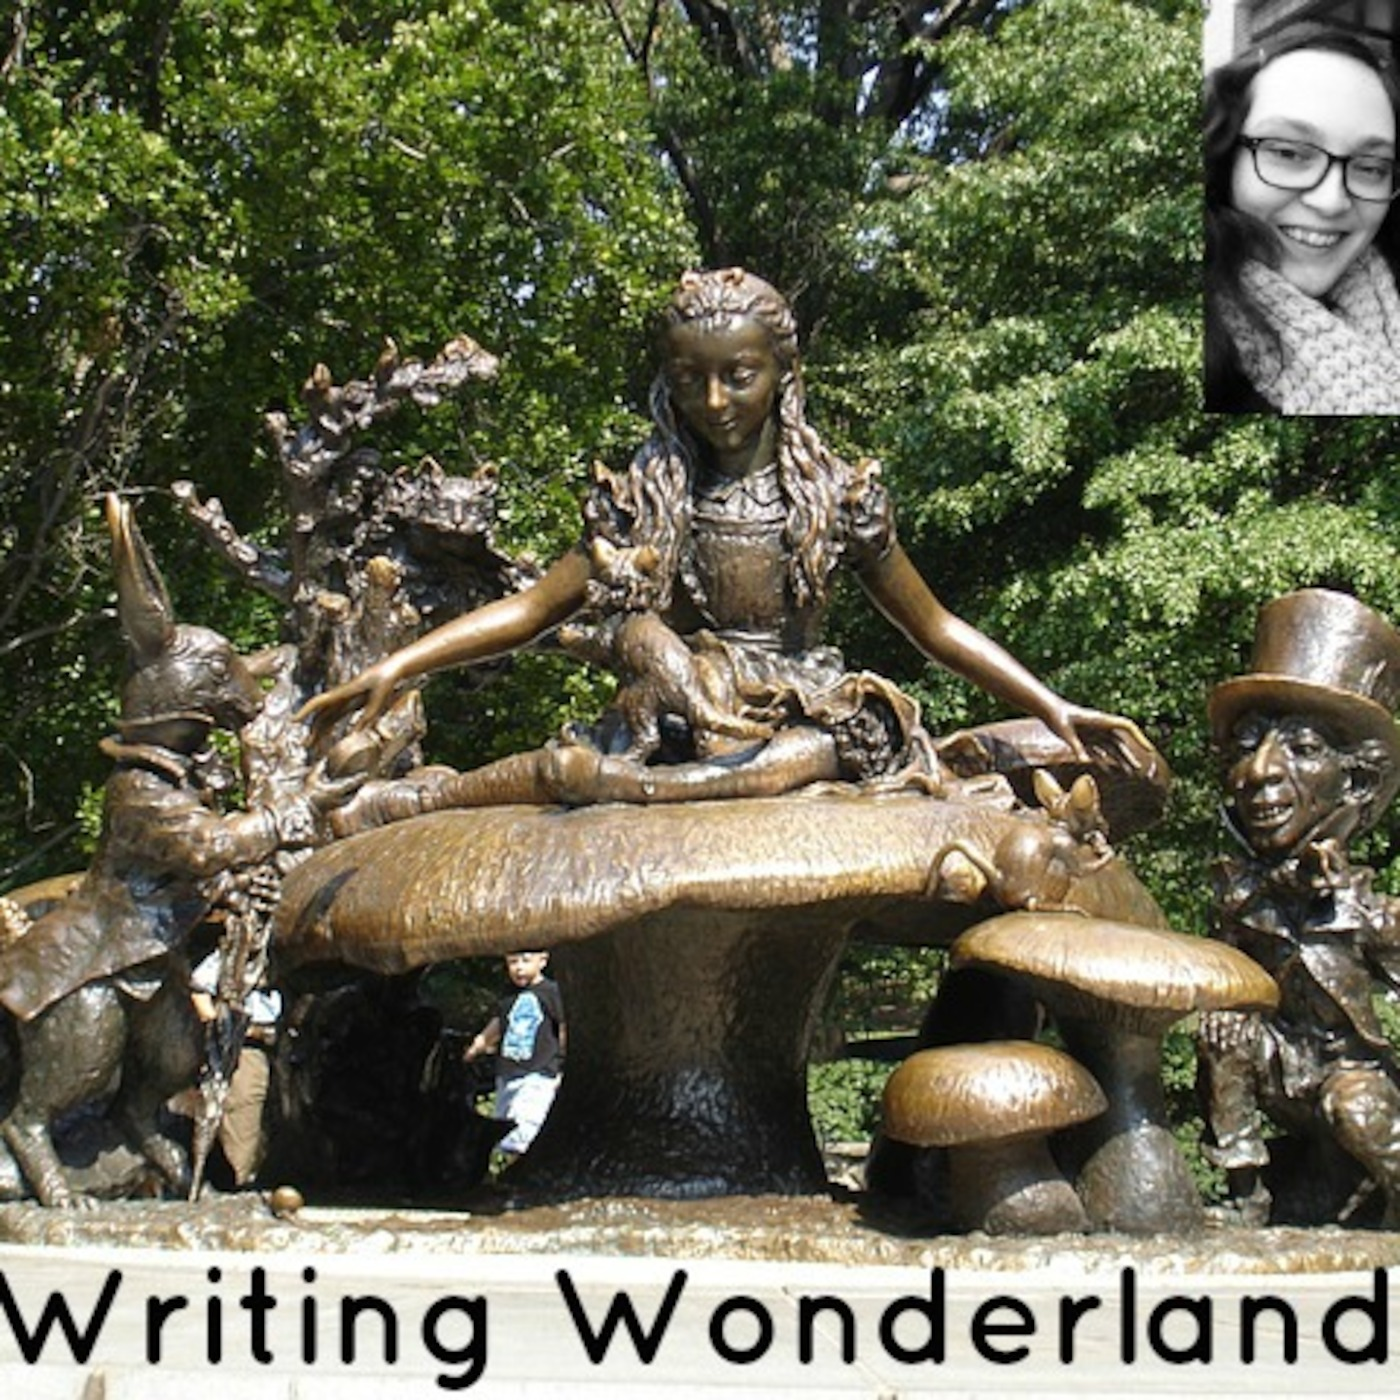 Writing Wonderland